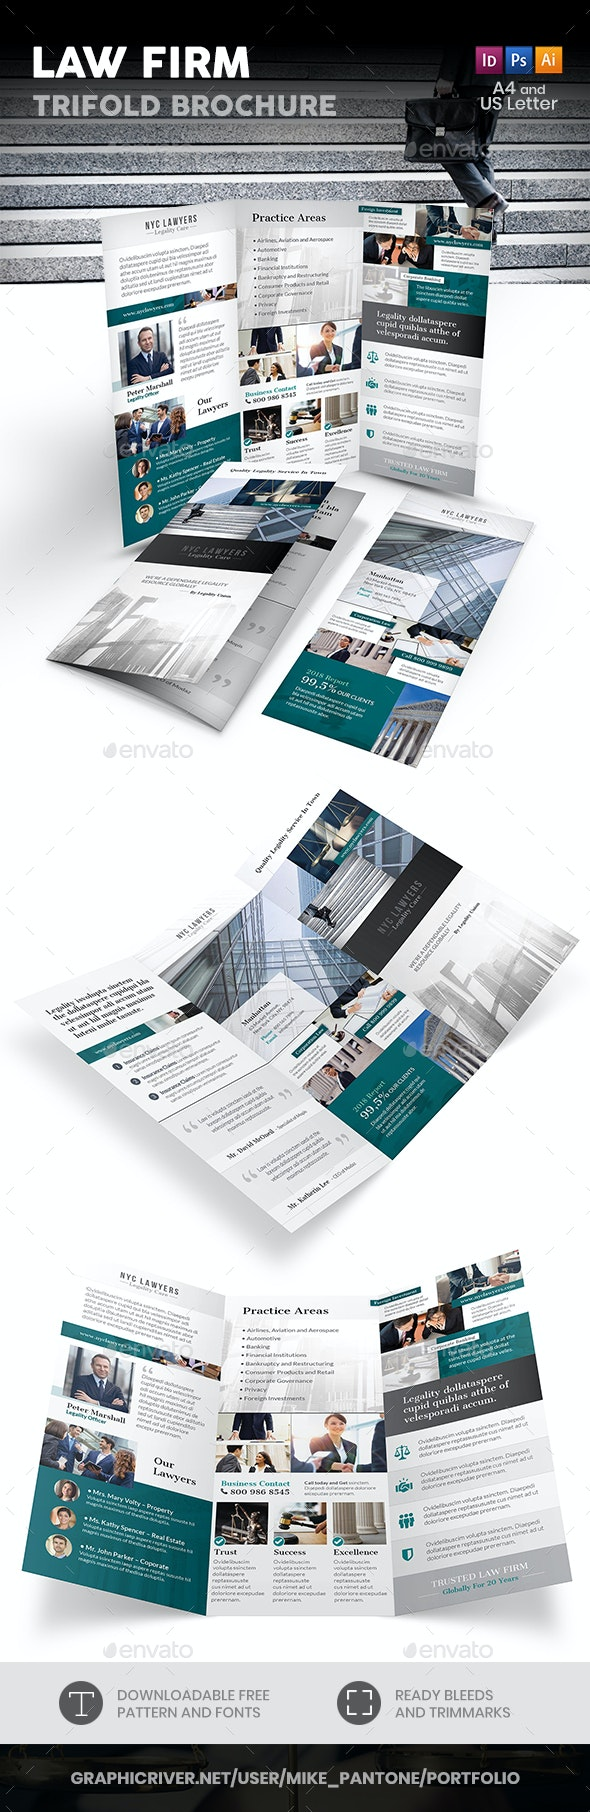 Law Firm Trifold Brochure 4 - Informational Brochures